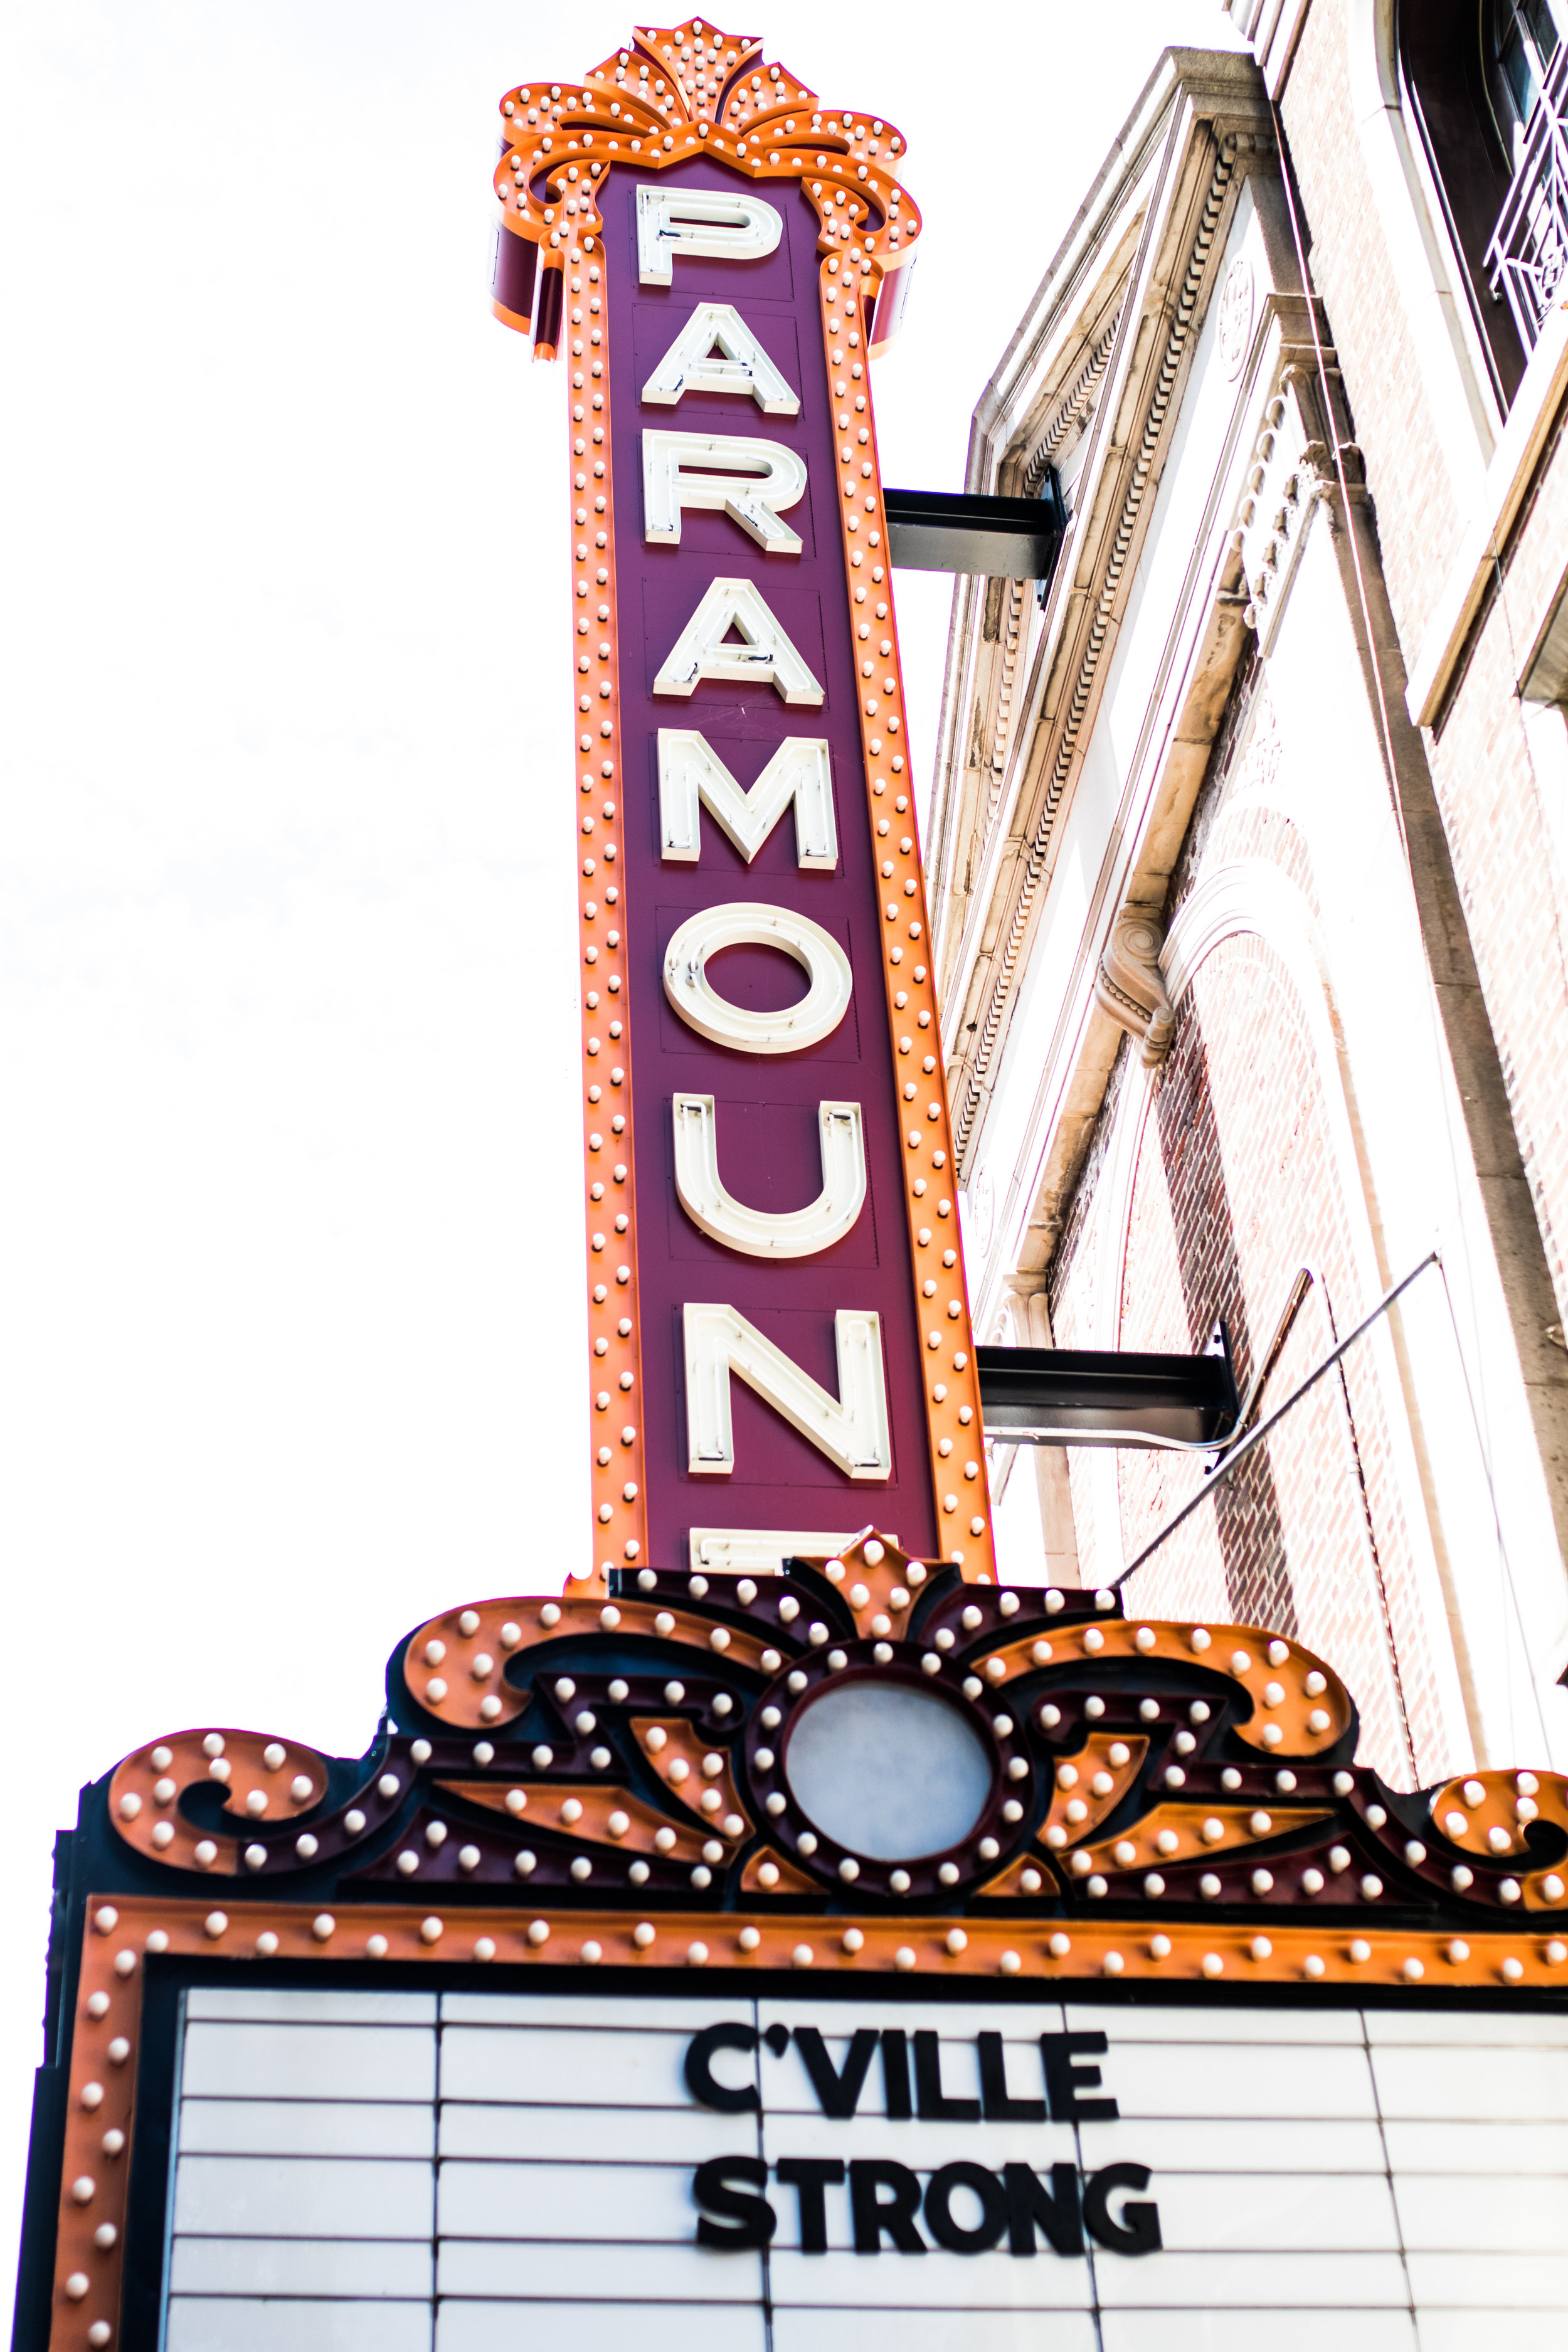 Heather Heyer's memorial service was at Paramount Theatre - just one block from where she died.